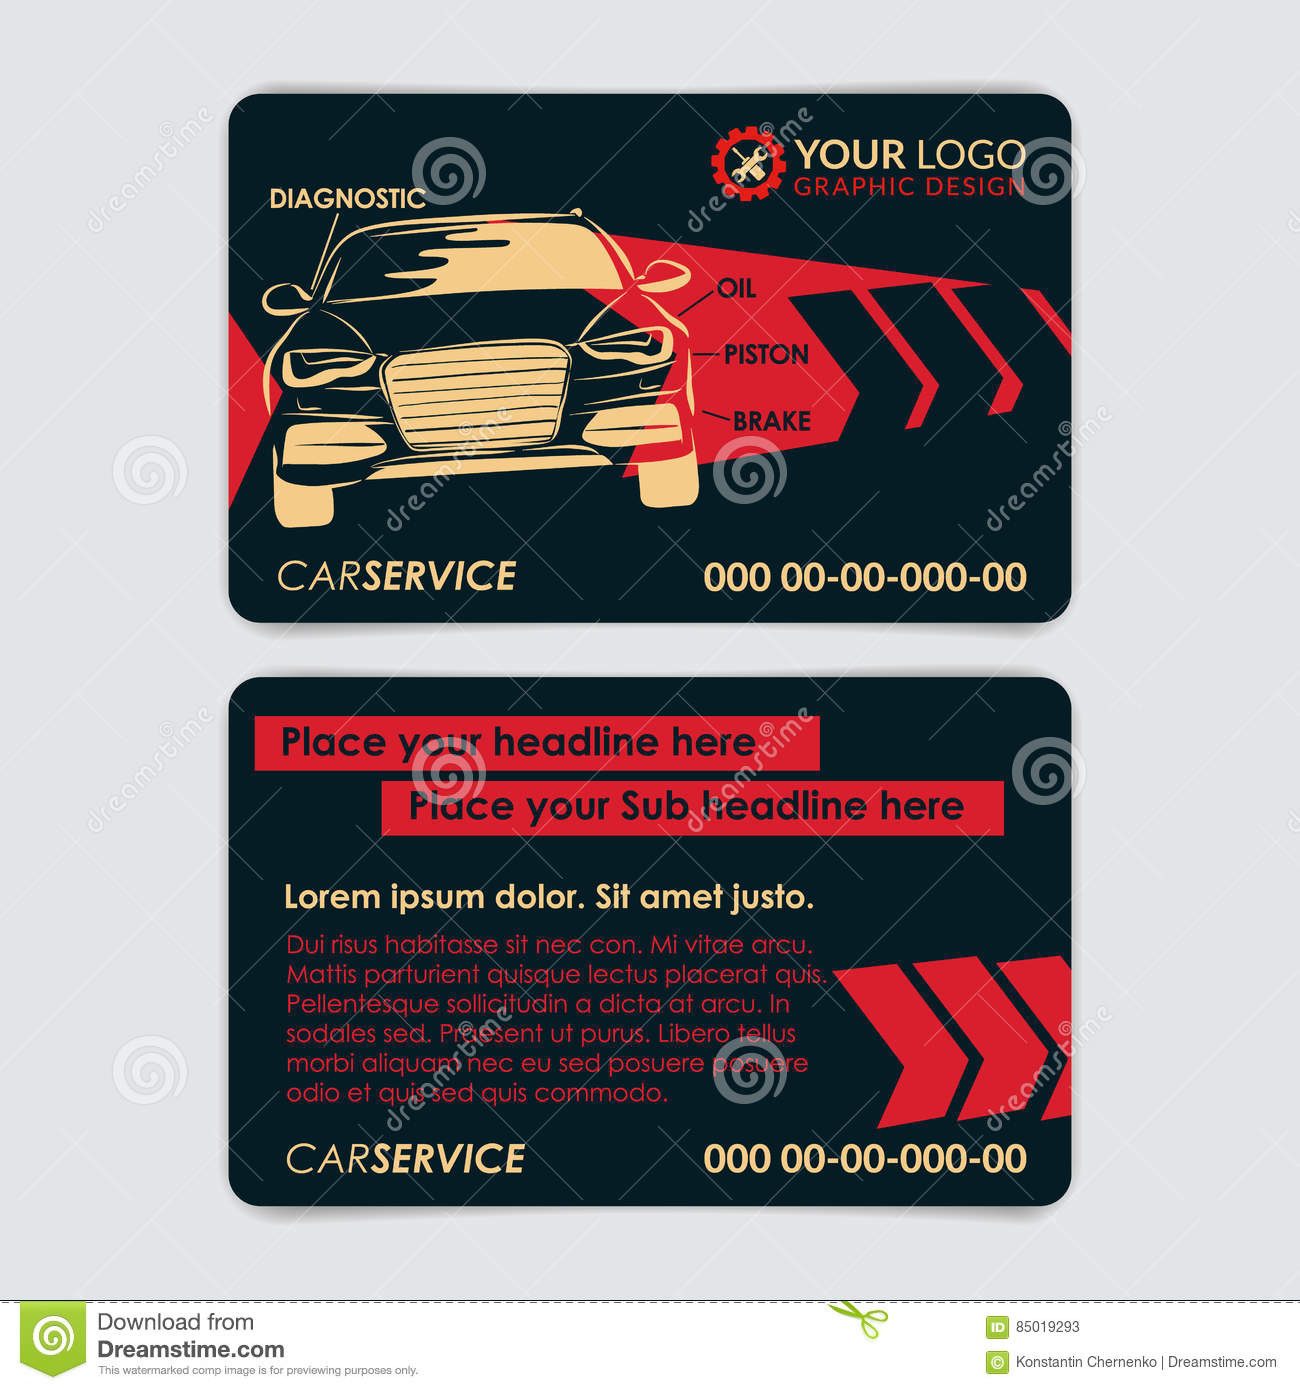 auto repair business card template create your own business cards - Auto Repair Business Cards